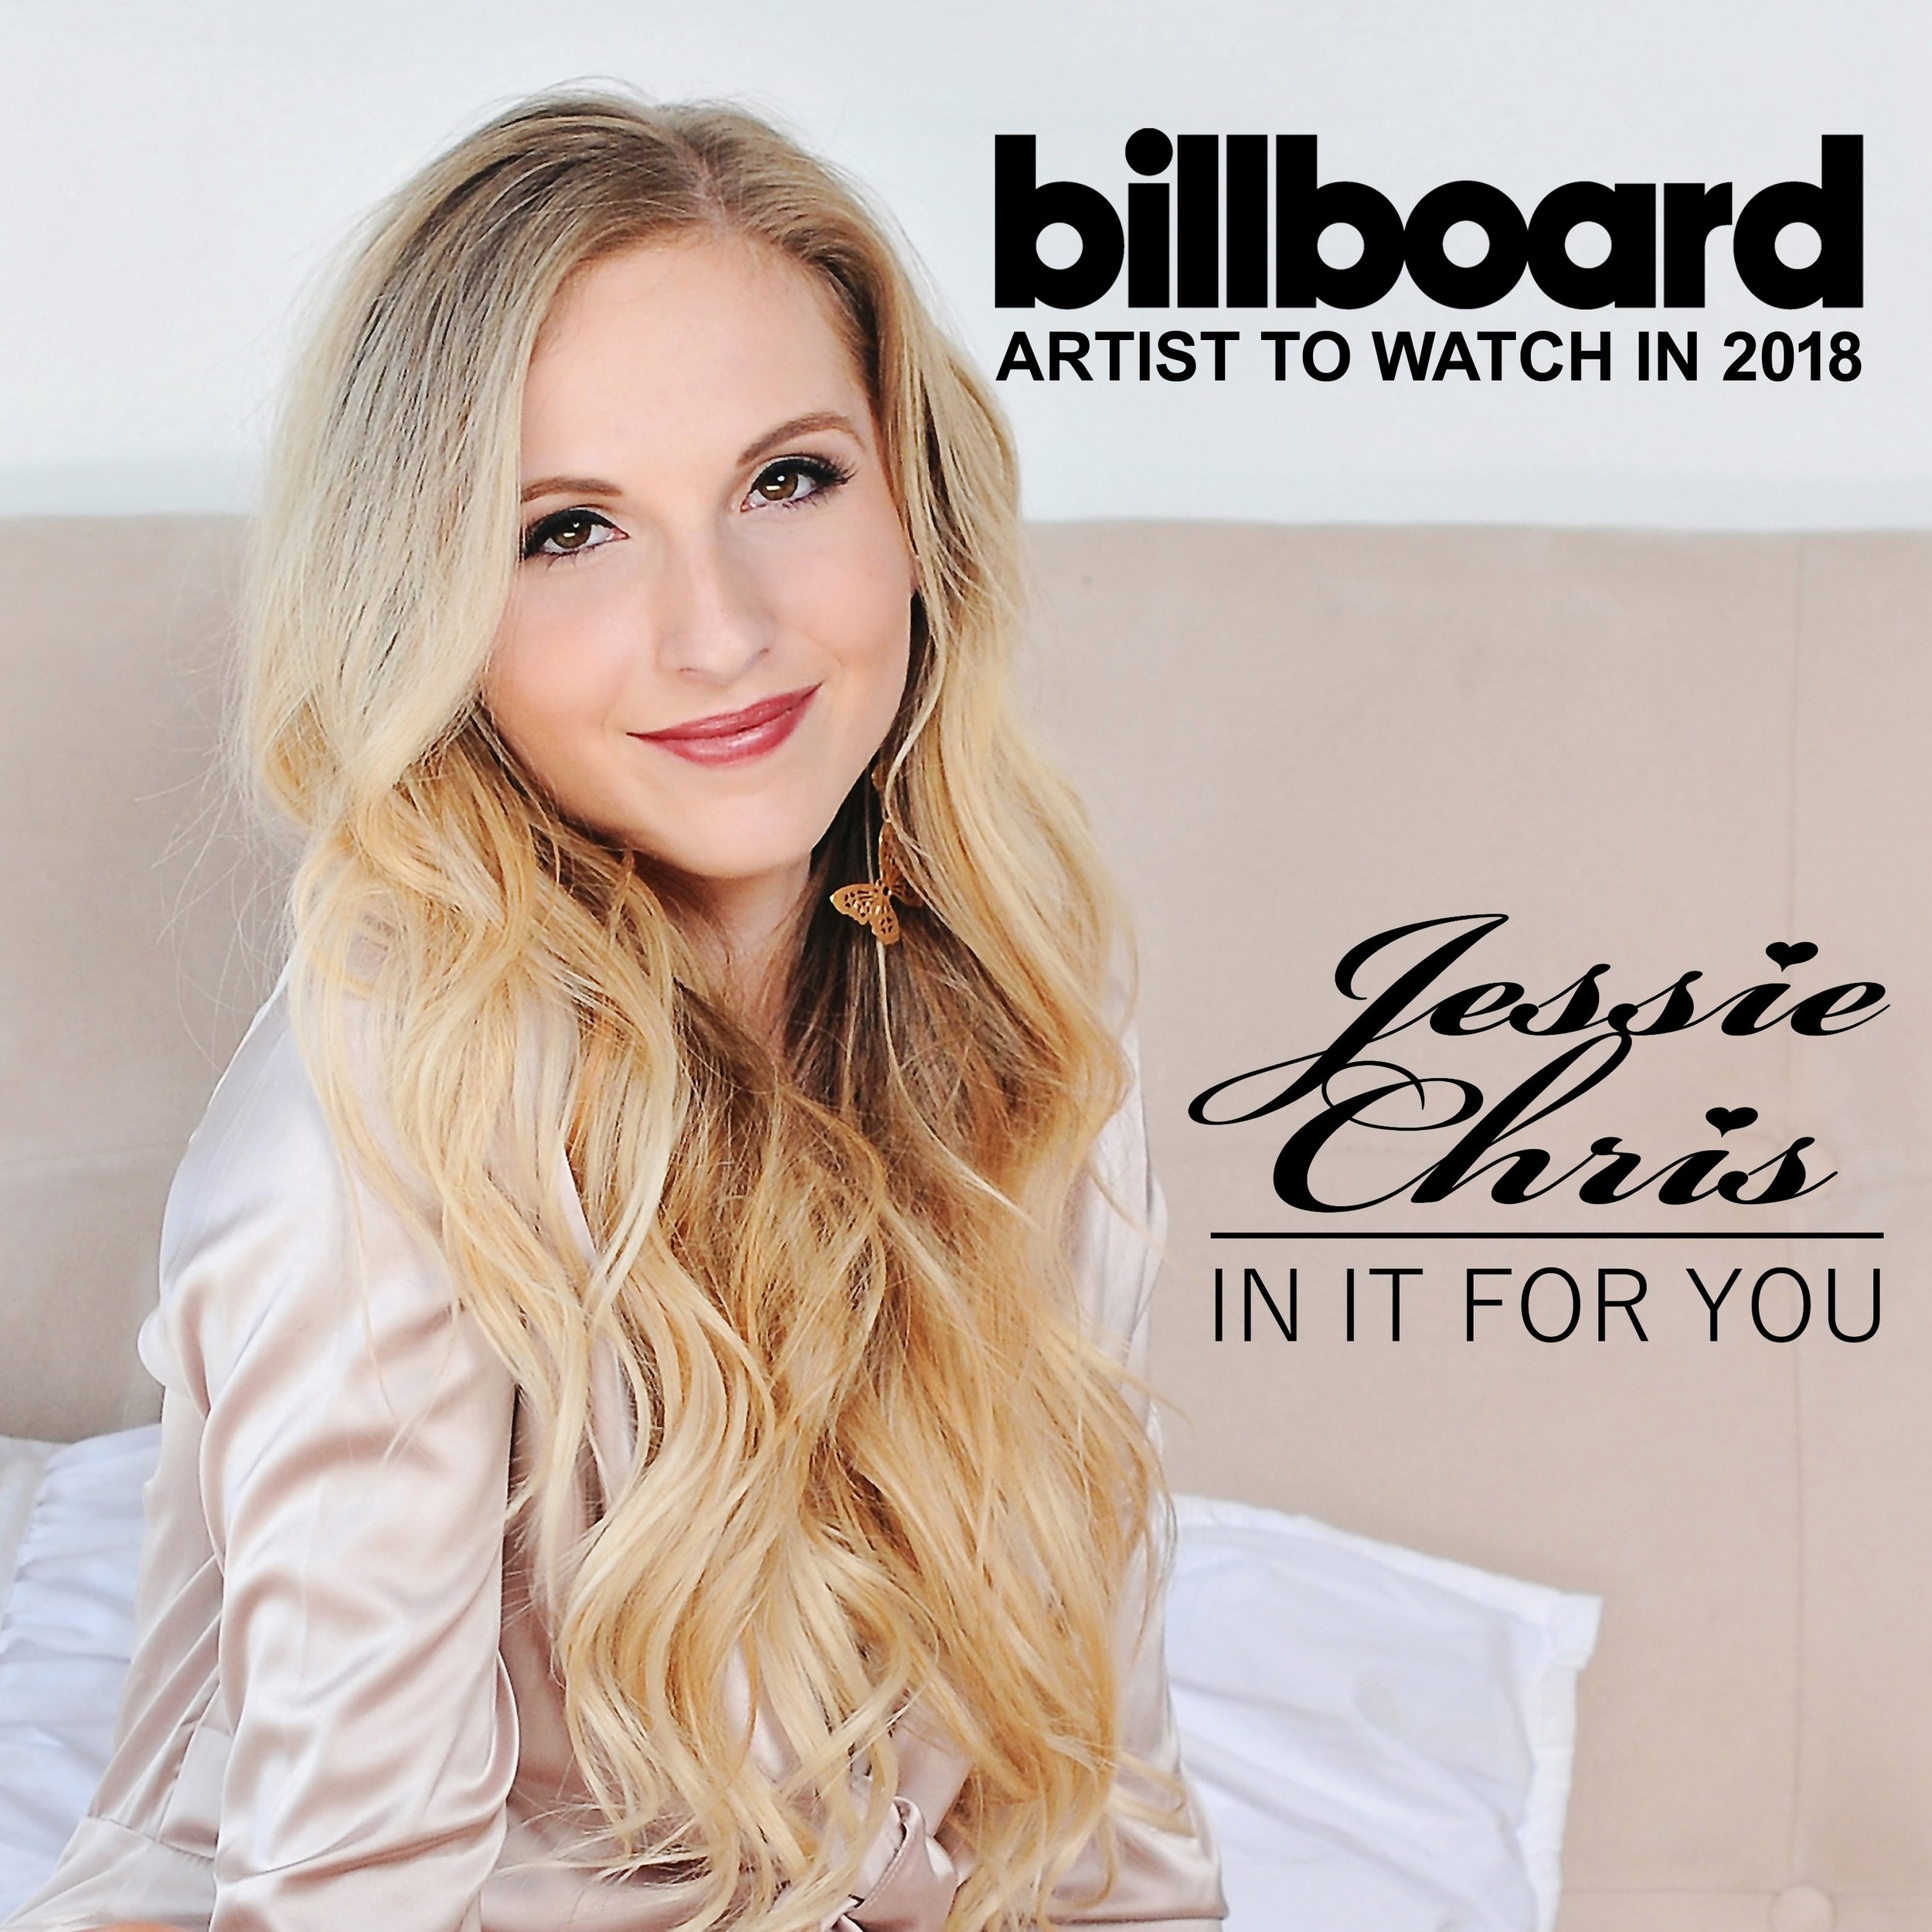 Jessie BillBoard Photo.jpg